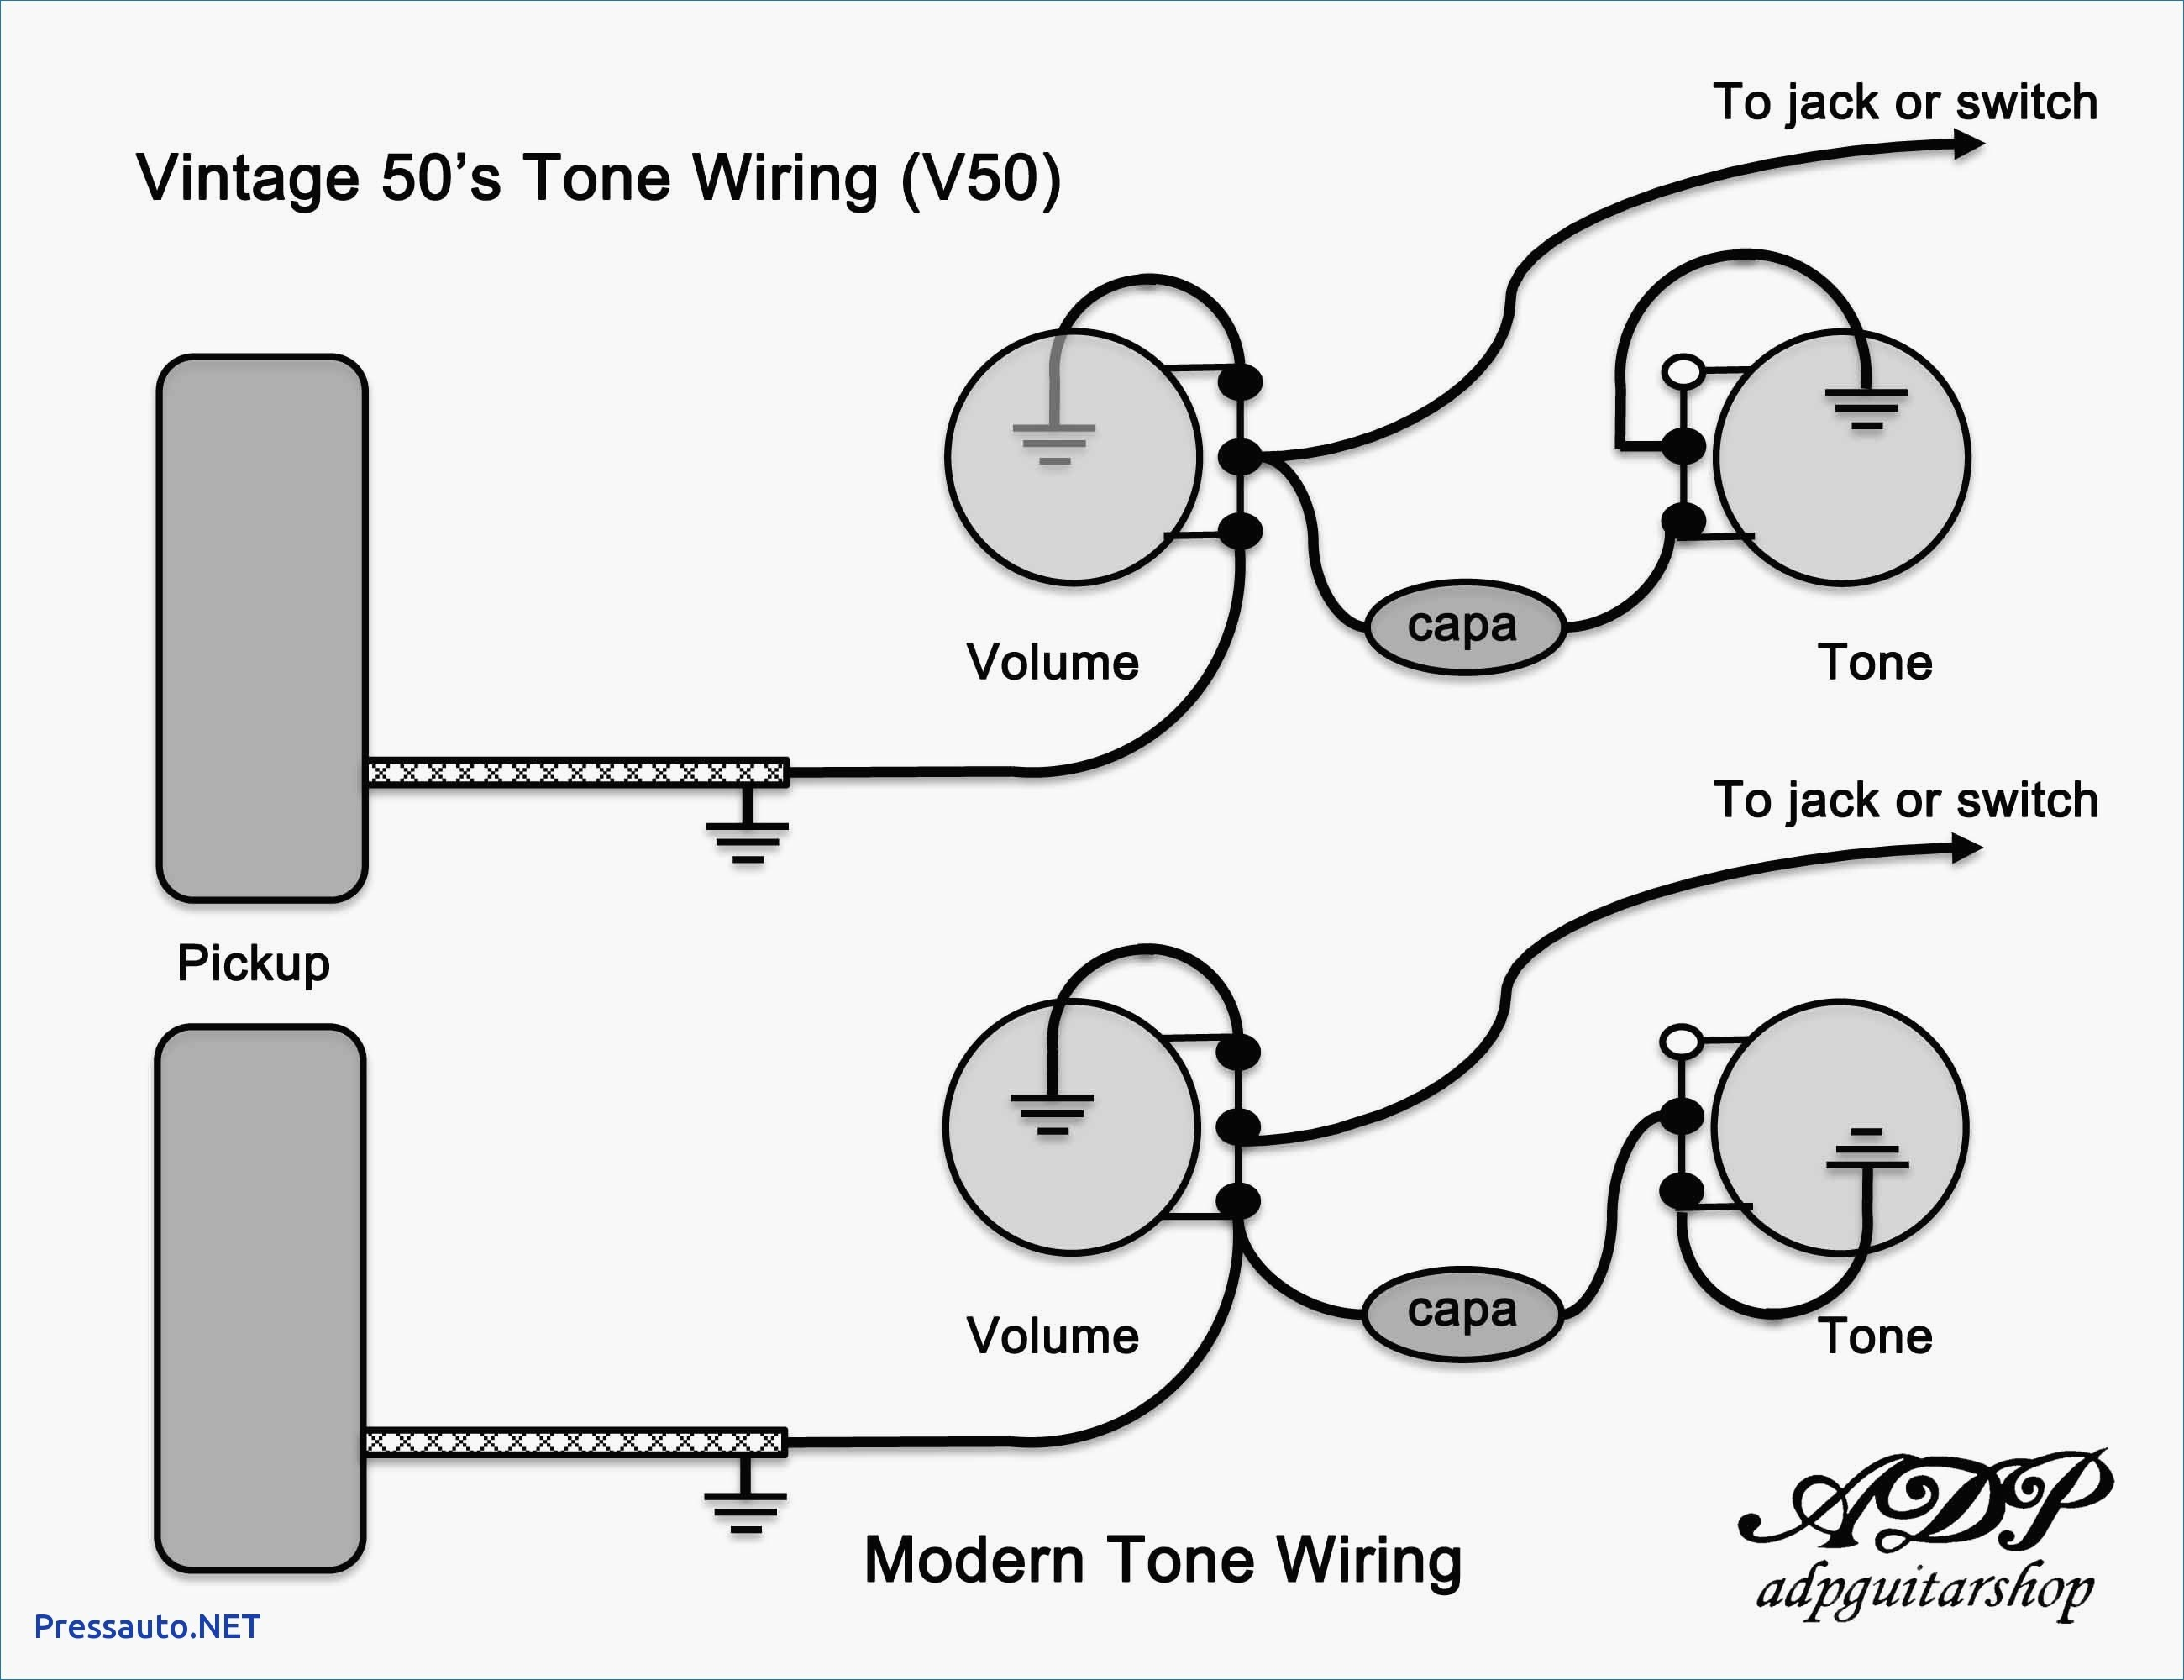 50s les paul wiring diagram les paul wiring diagram schematic 50s les paul wiring diagram les paul guitar drawing at getdrawings of 50s les paul wiring cheapraybanclubmaster Choice Image